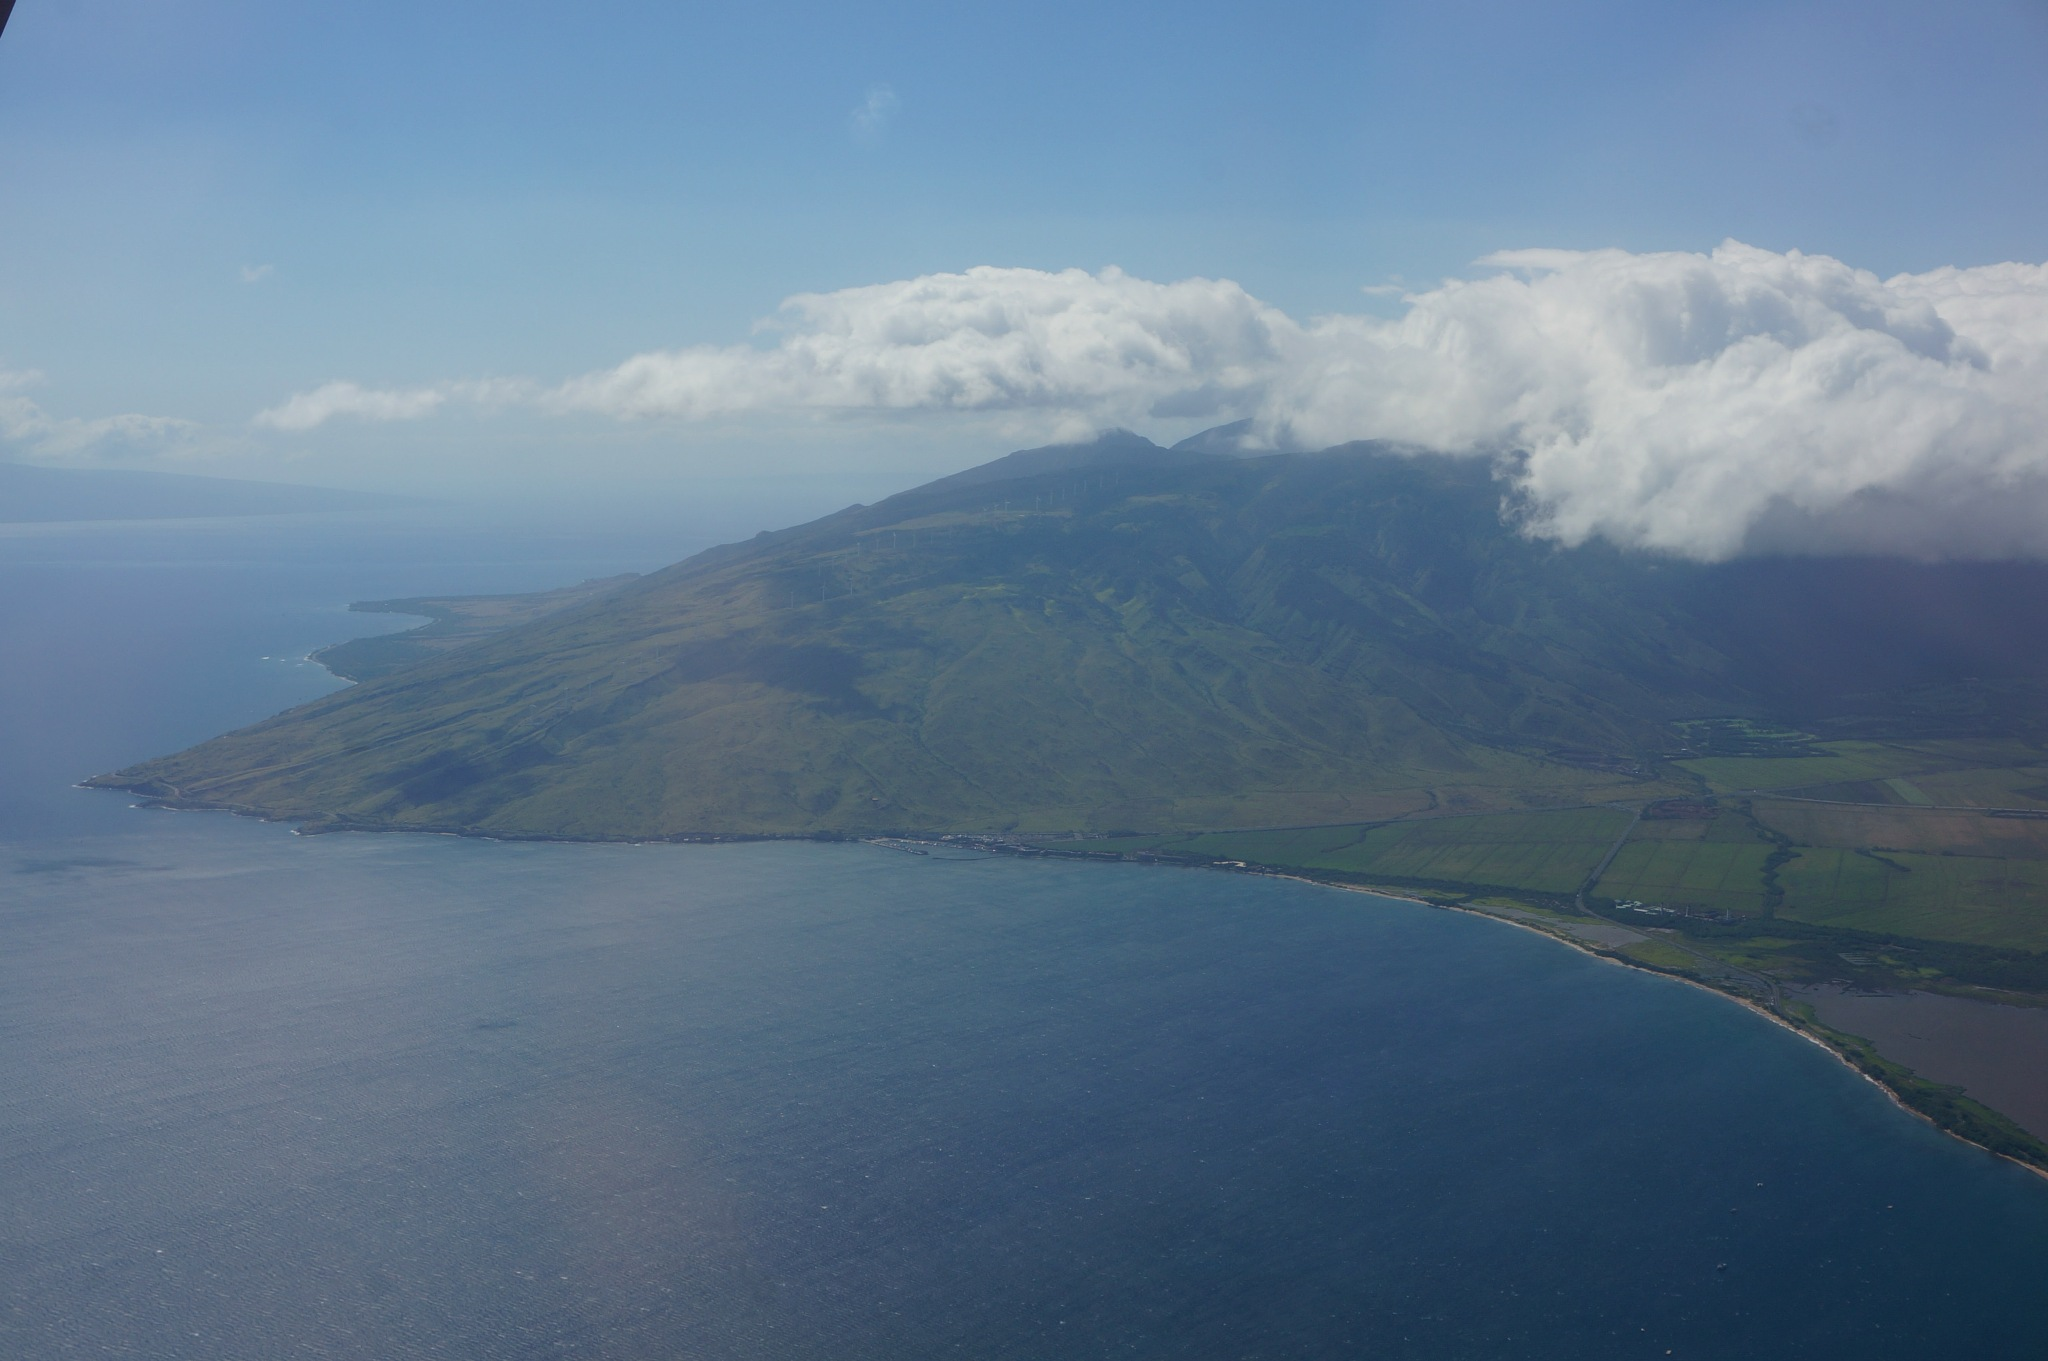 Approaching Maui by tanukisan